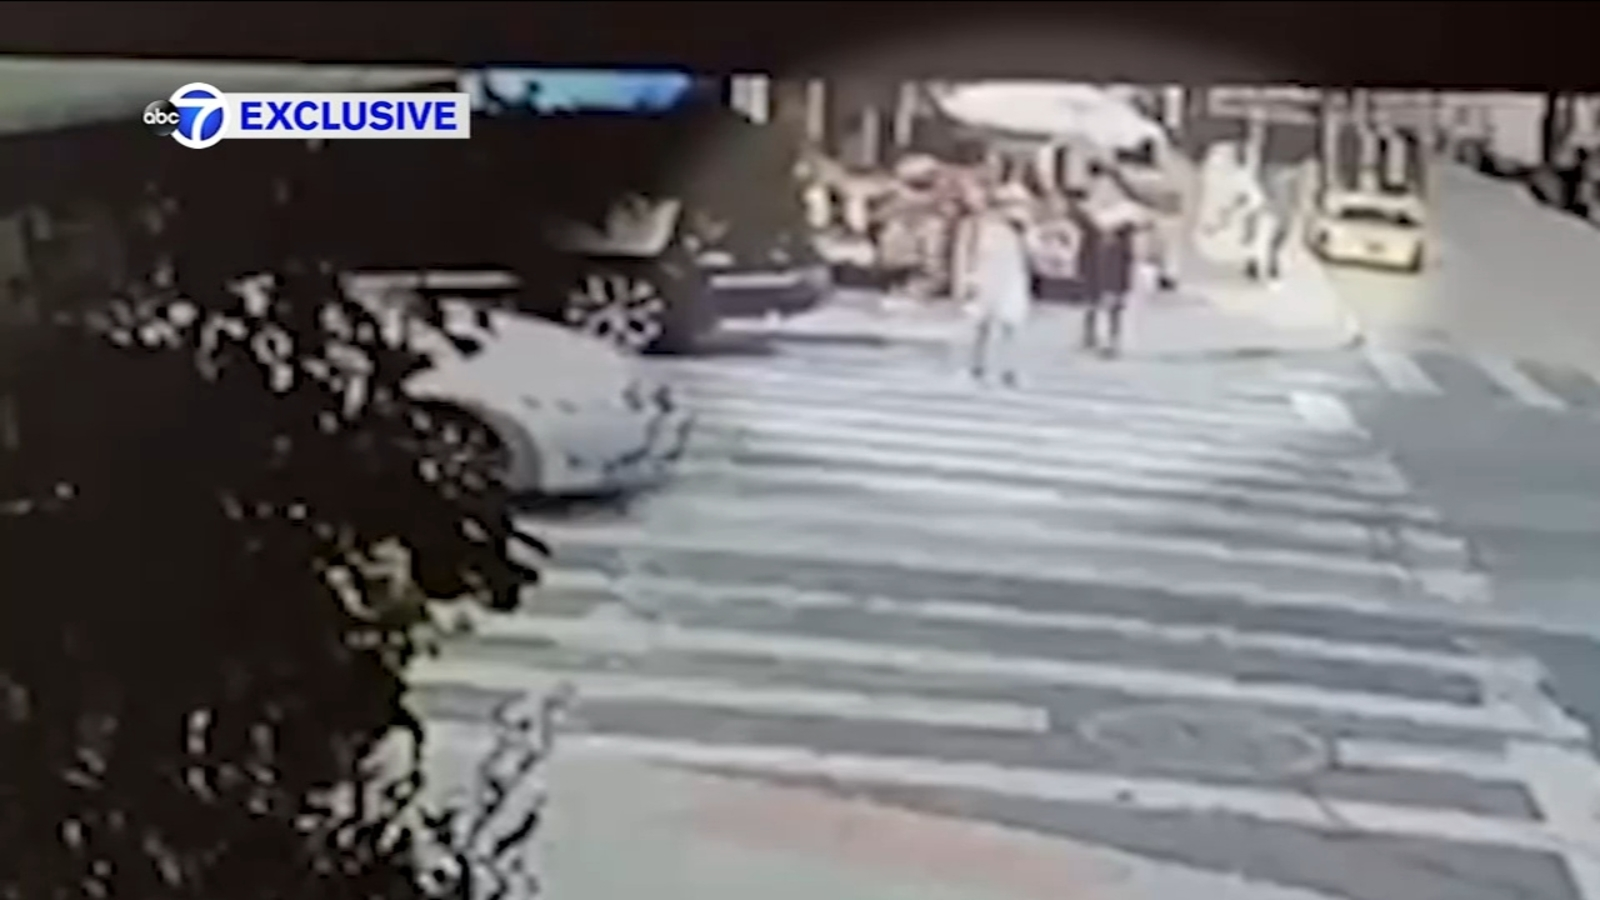 abc7ny.com: Exclusive: Asian woman recounts moment she was shoved into moving vehicle in Chinatown